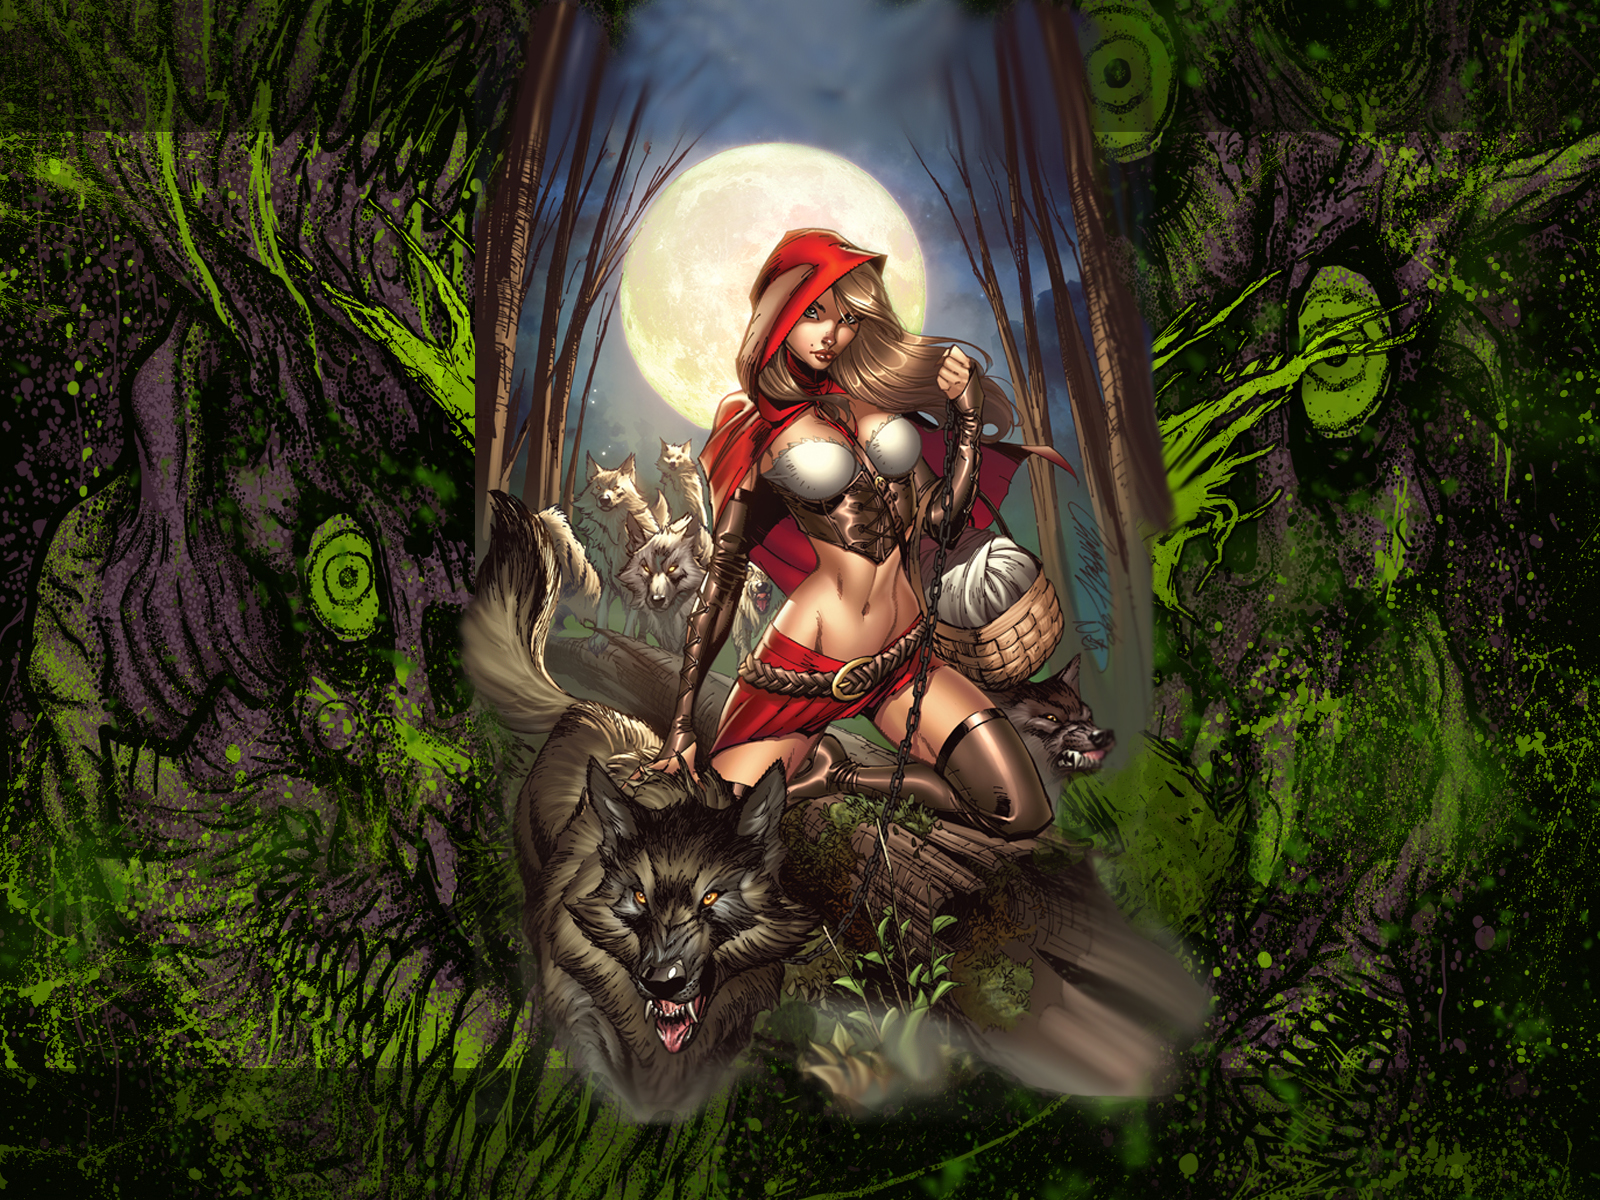 Fairy Tail 3d Wallpaper Issue Grimm Fairy Tales Myths Amp Legends 1 Art Id